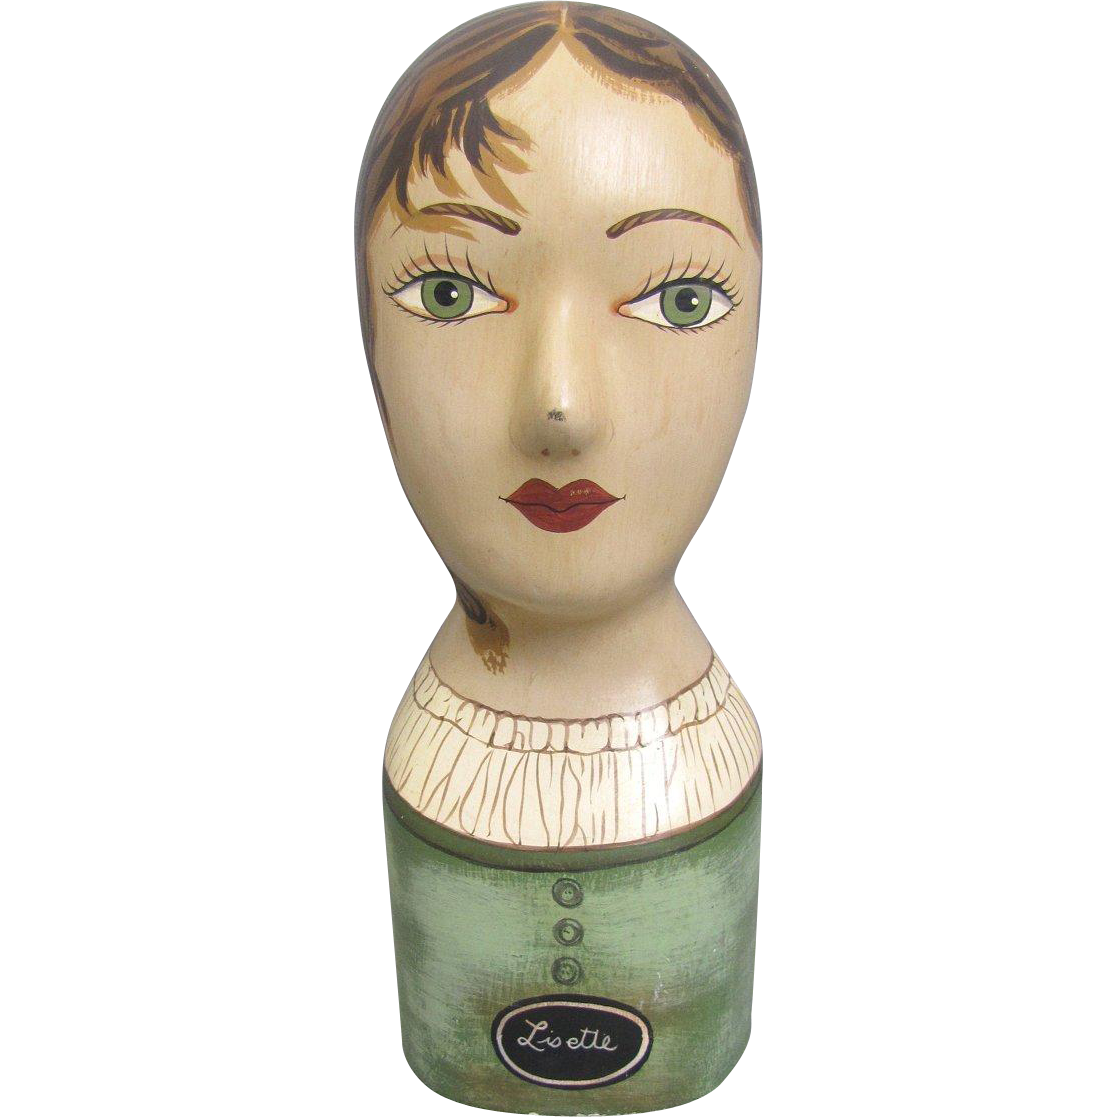 Vintage Plaster Mannequin Head Display Hats Wigs